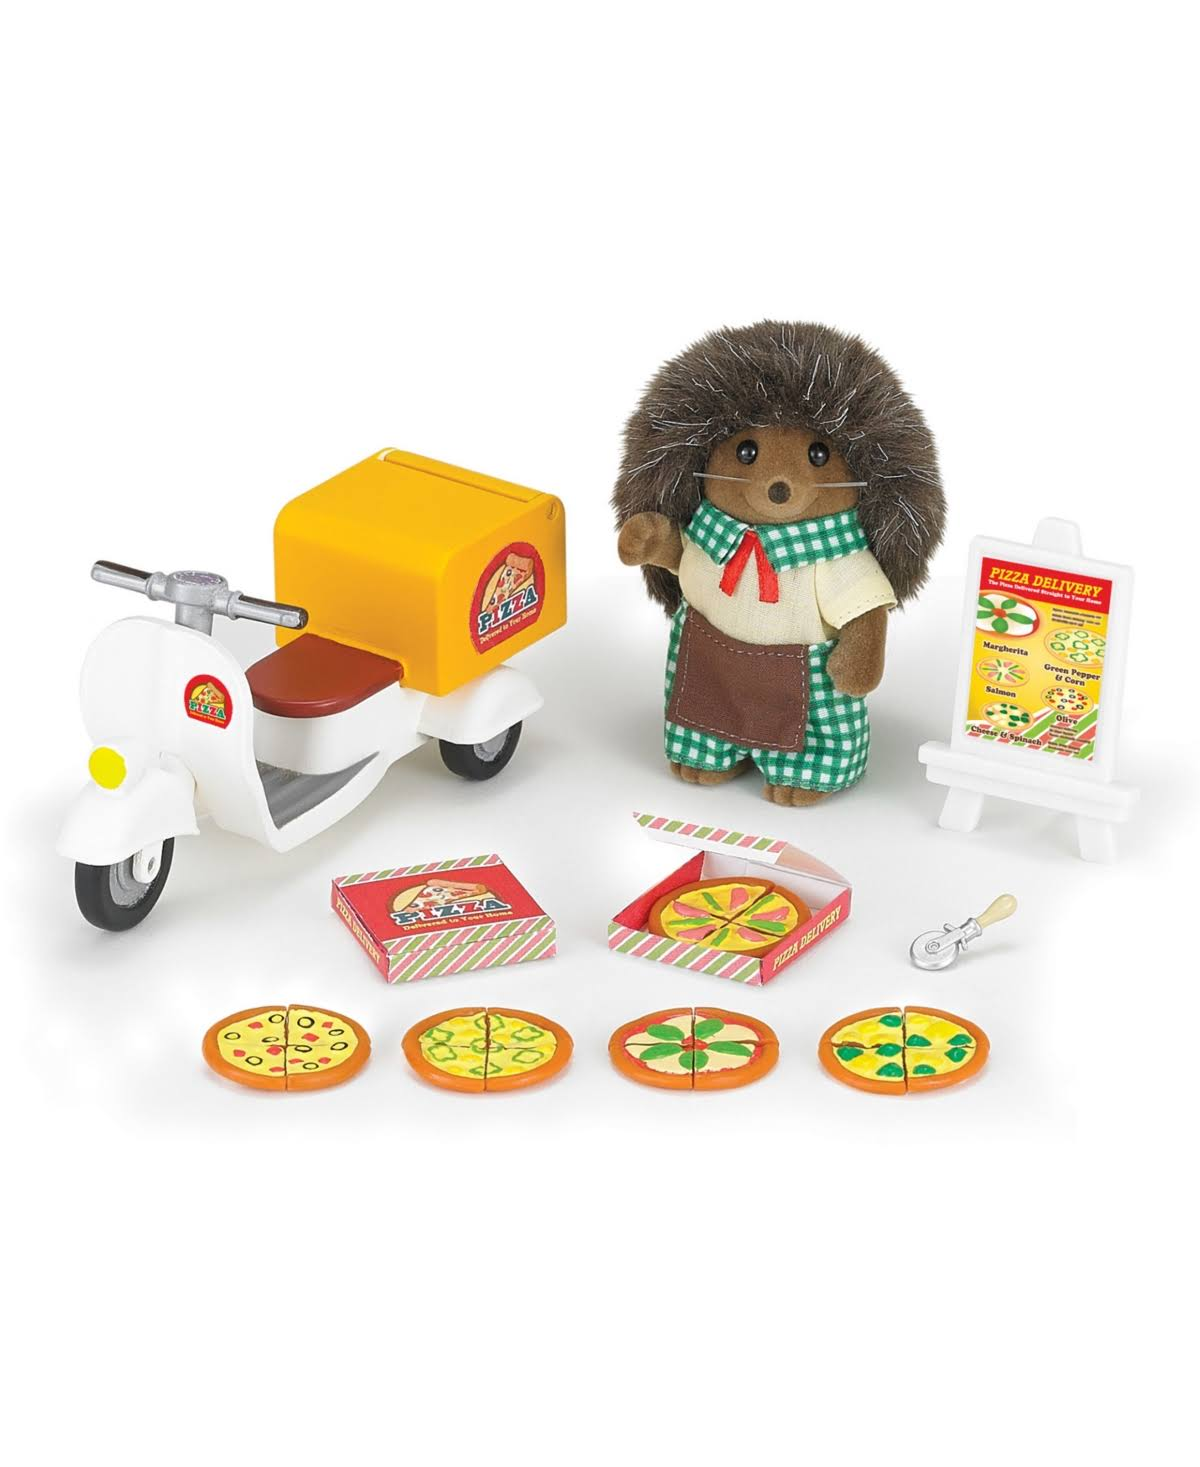 Calico Critters - Pizza Delivery Set